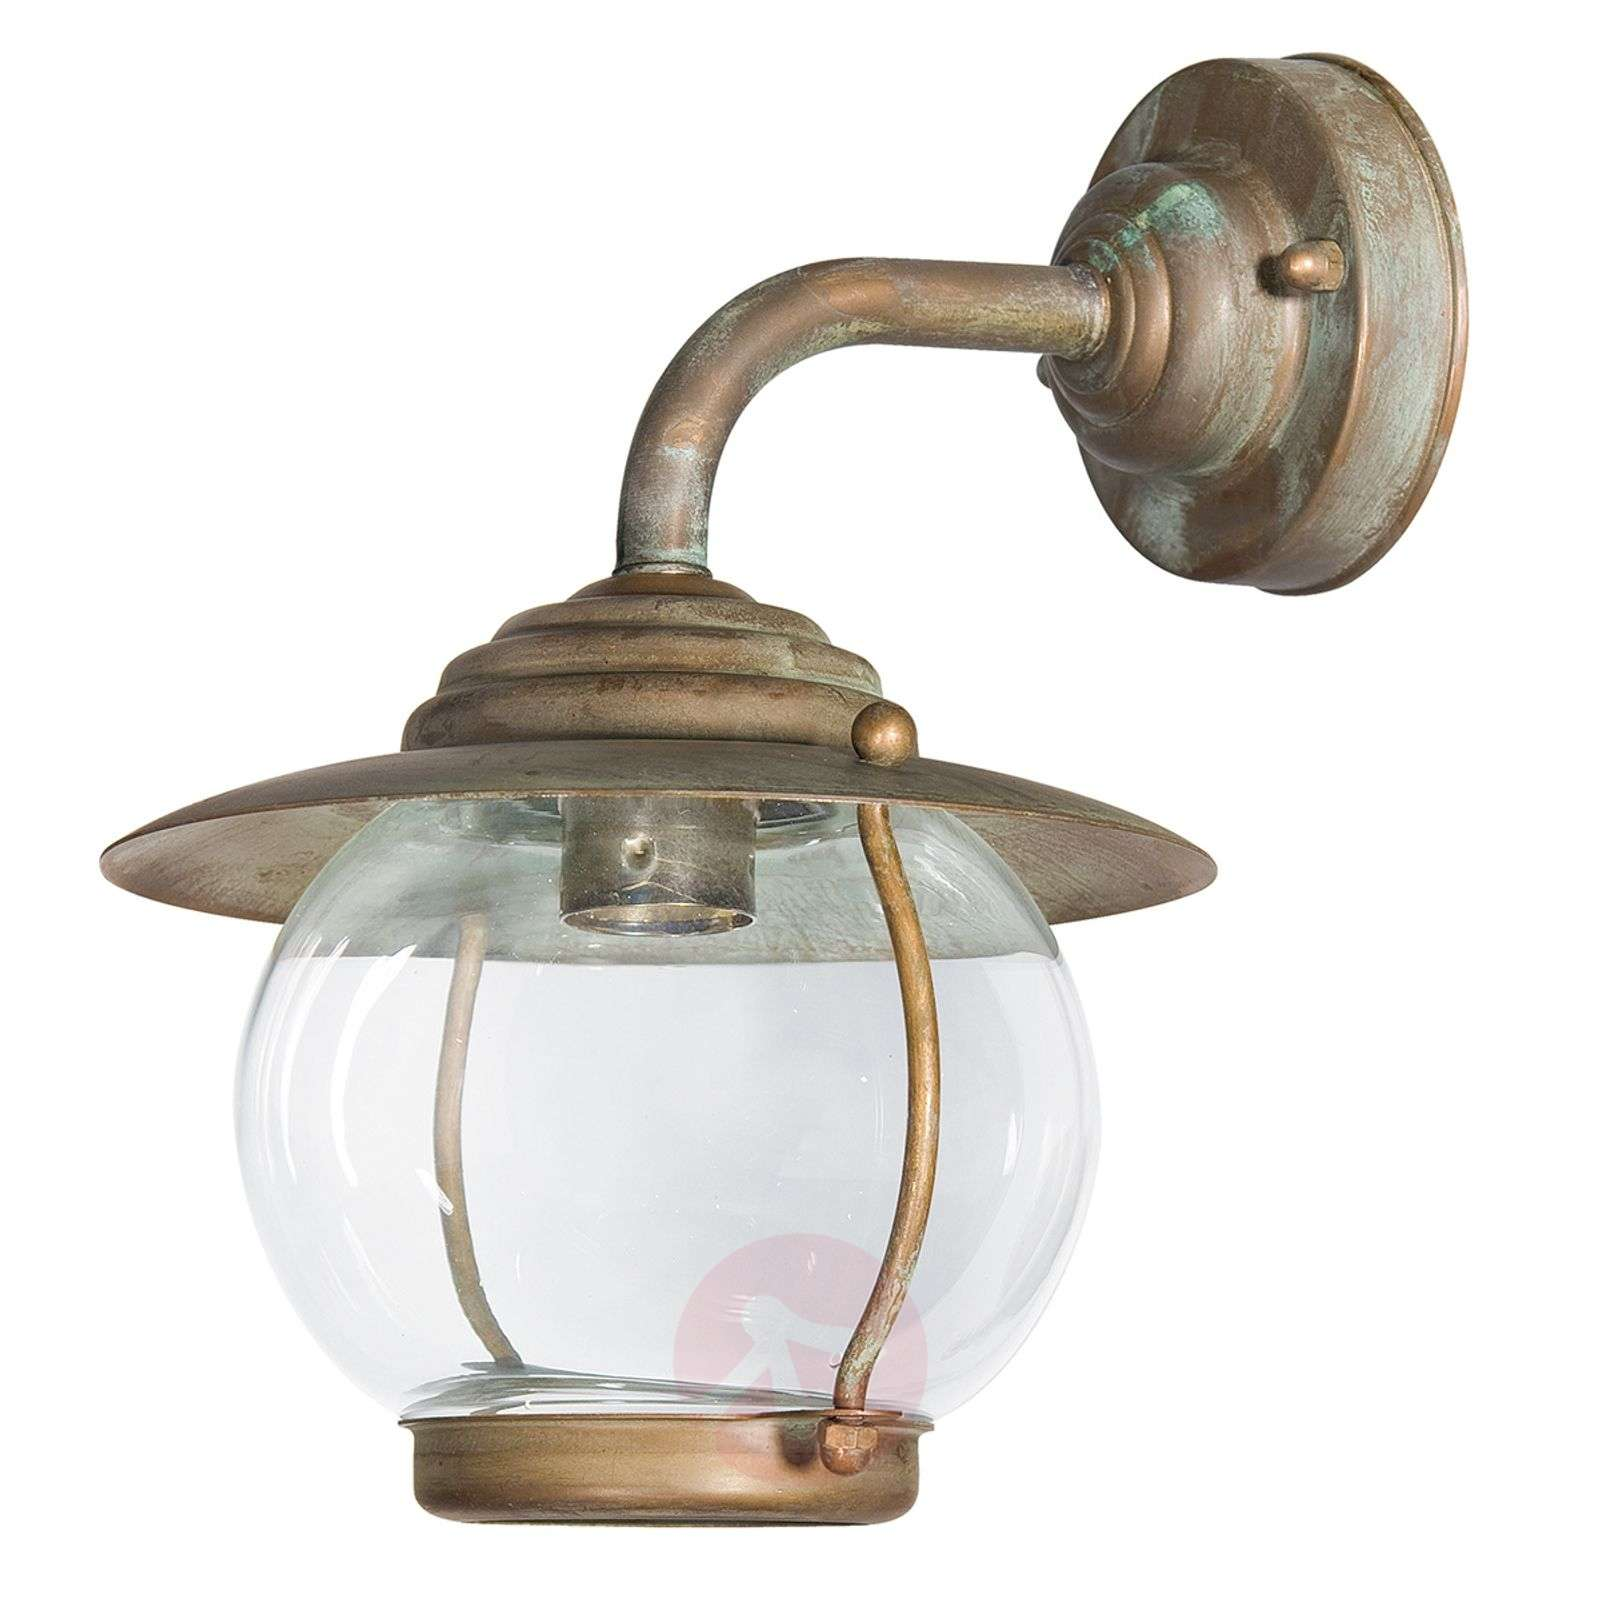 Olivia round outdoor wall lamp IP44-6515362-01